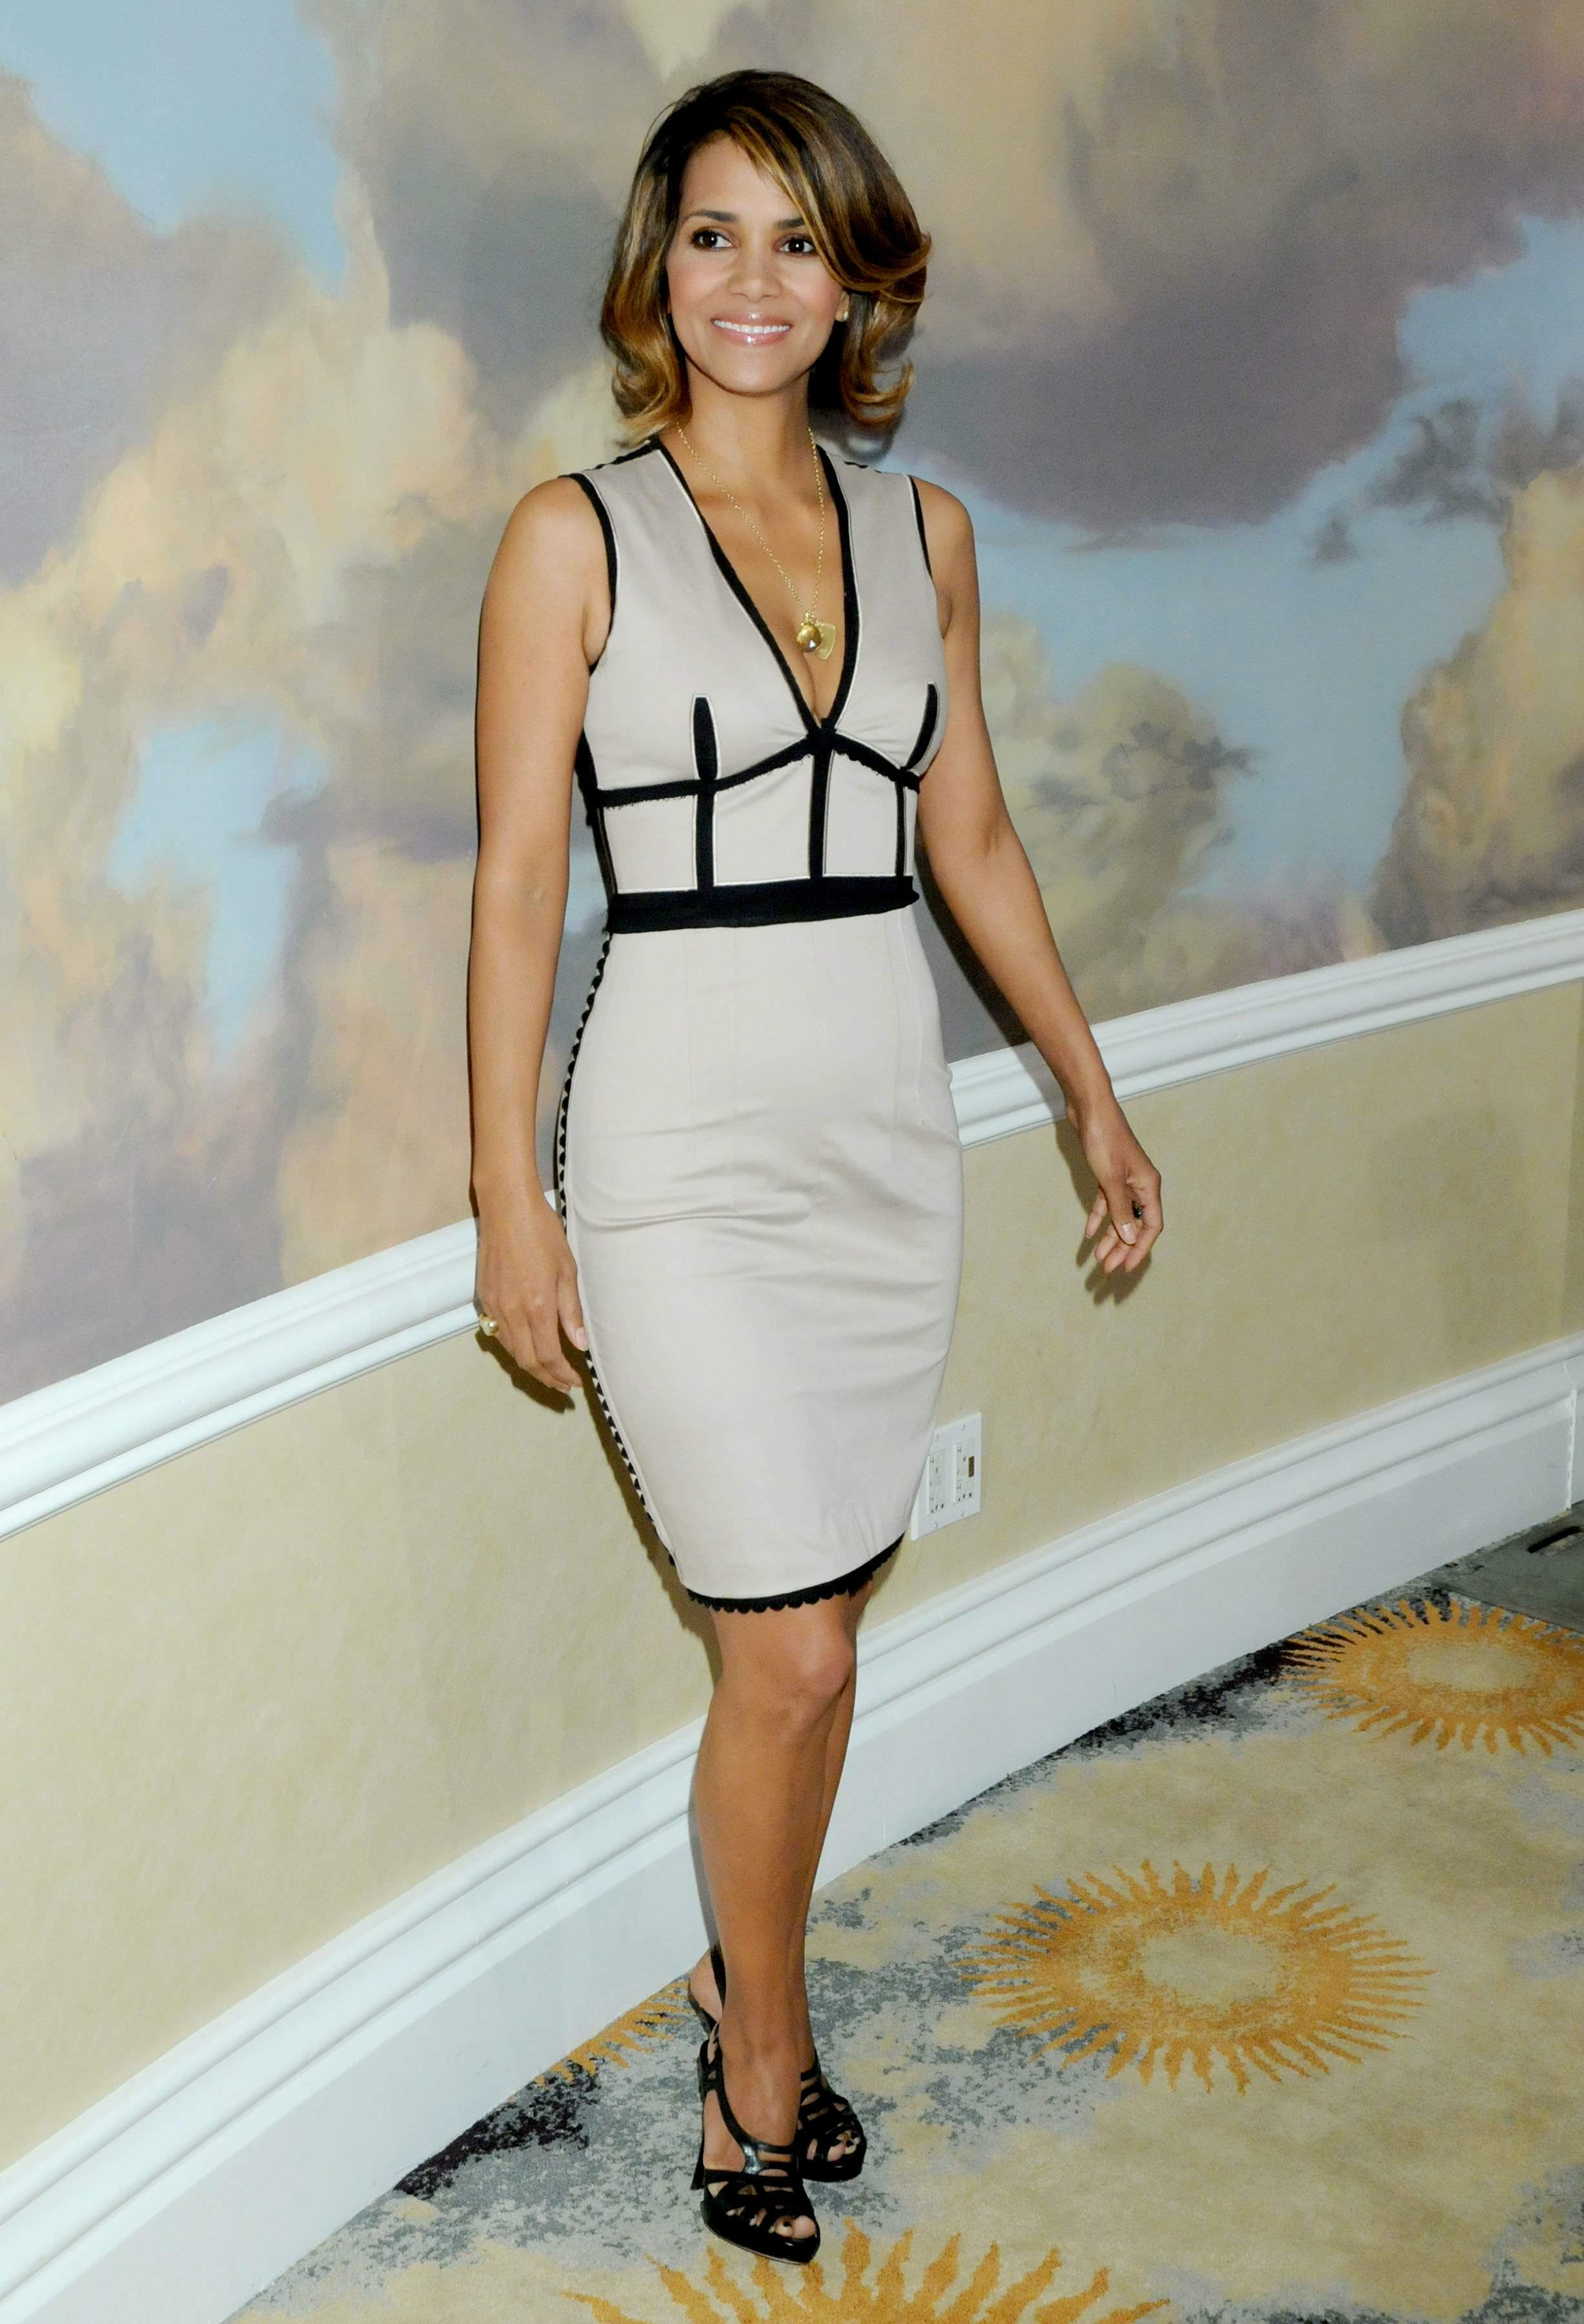 58553_Halle_Berry_2009_Jenesse_Silver_Rose_Gala_Auction_in_Beverly_Hills_14_122_167lo.jpg